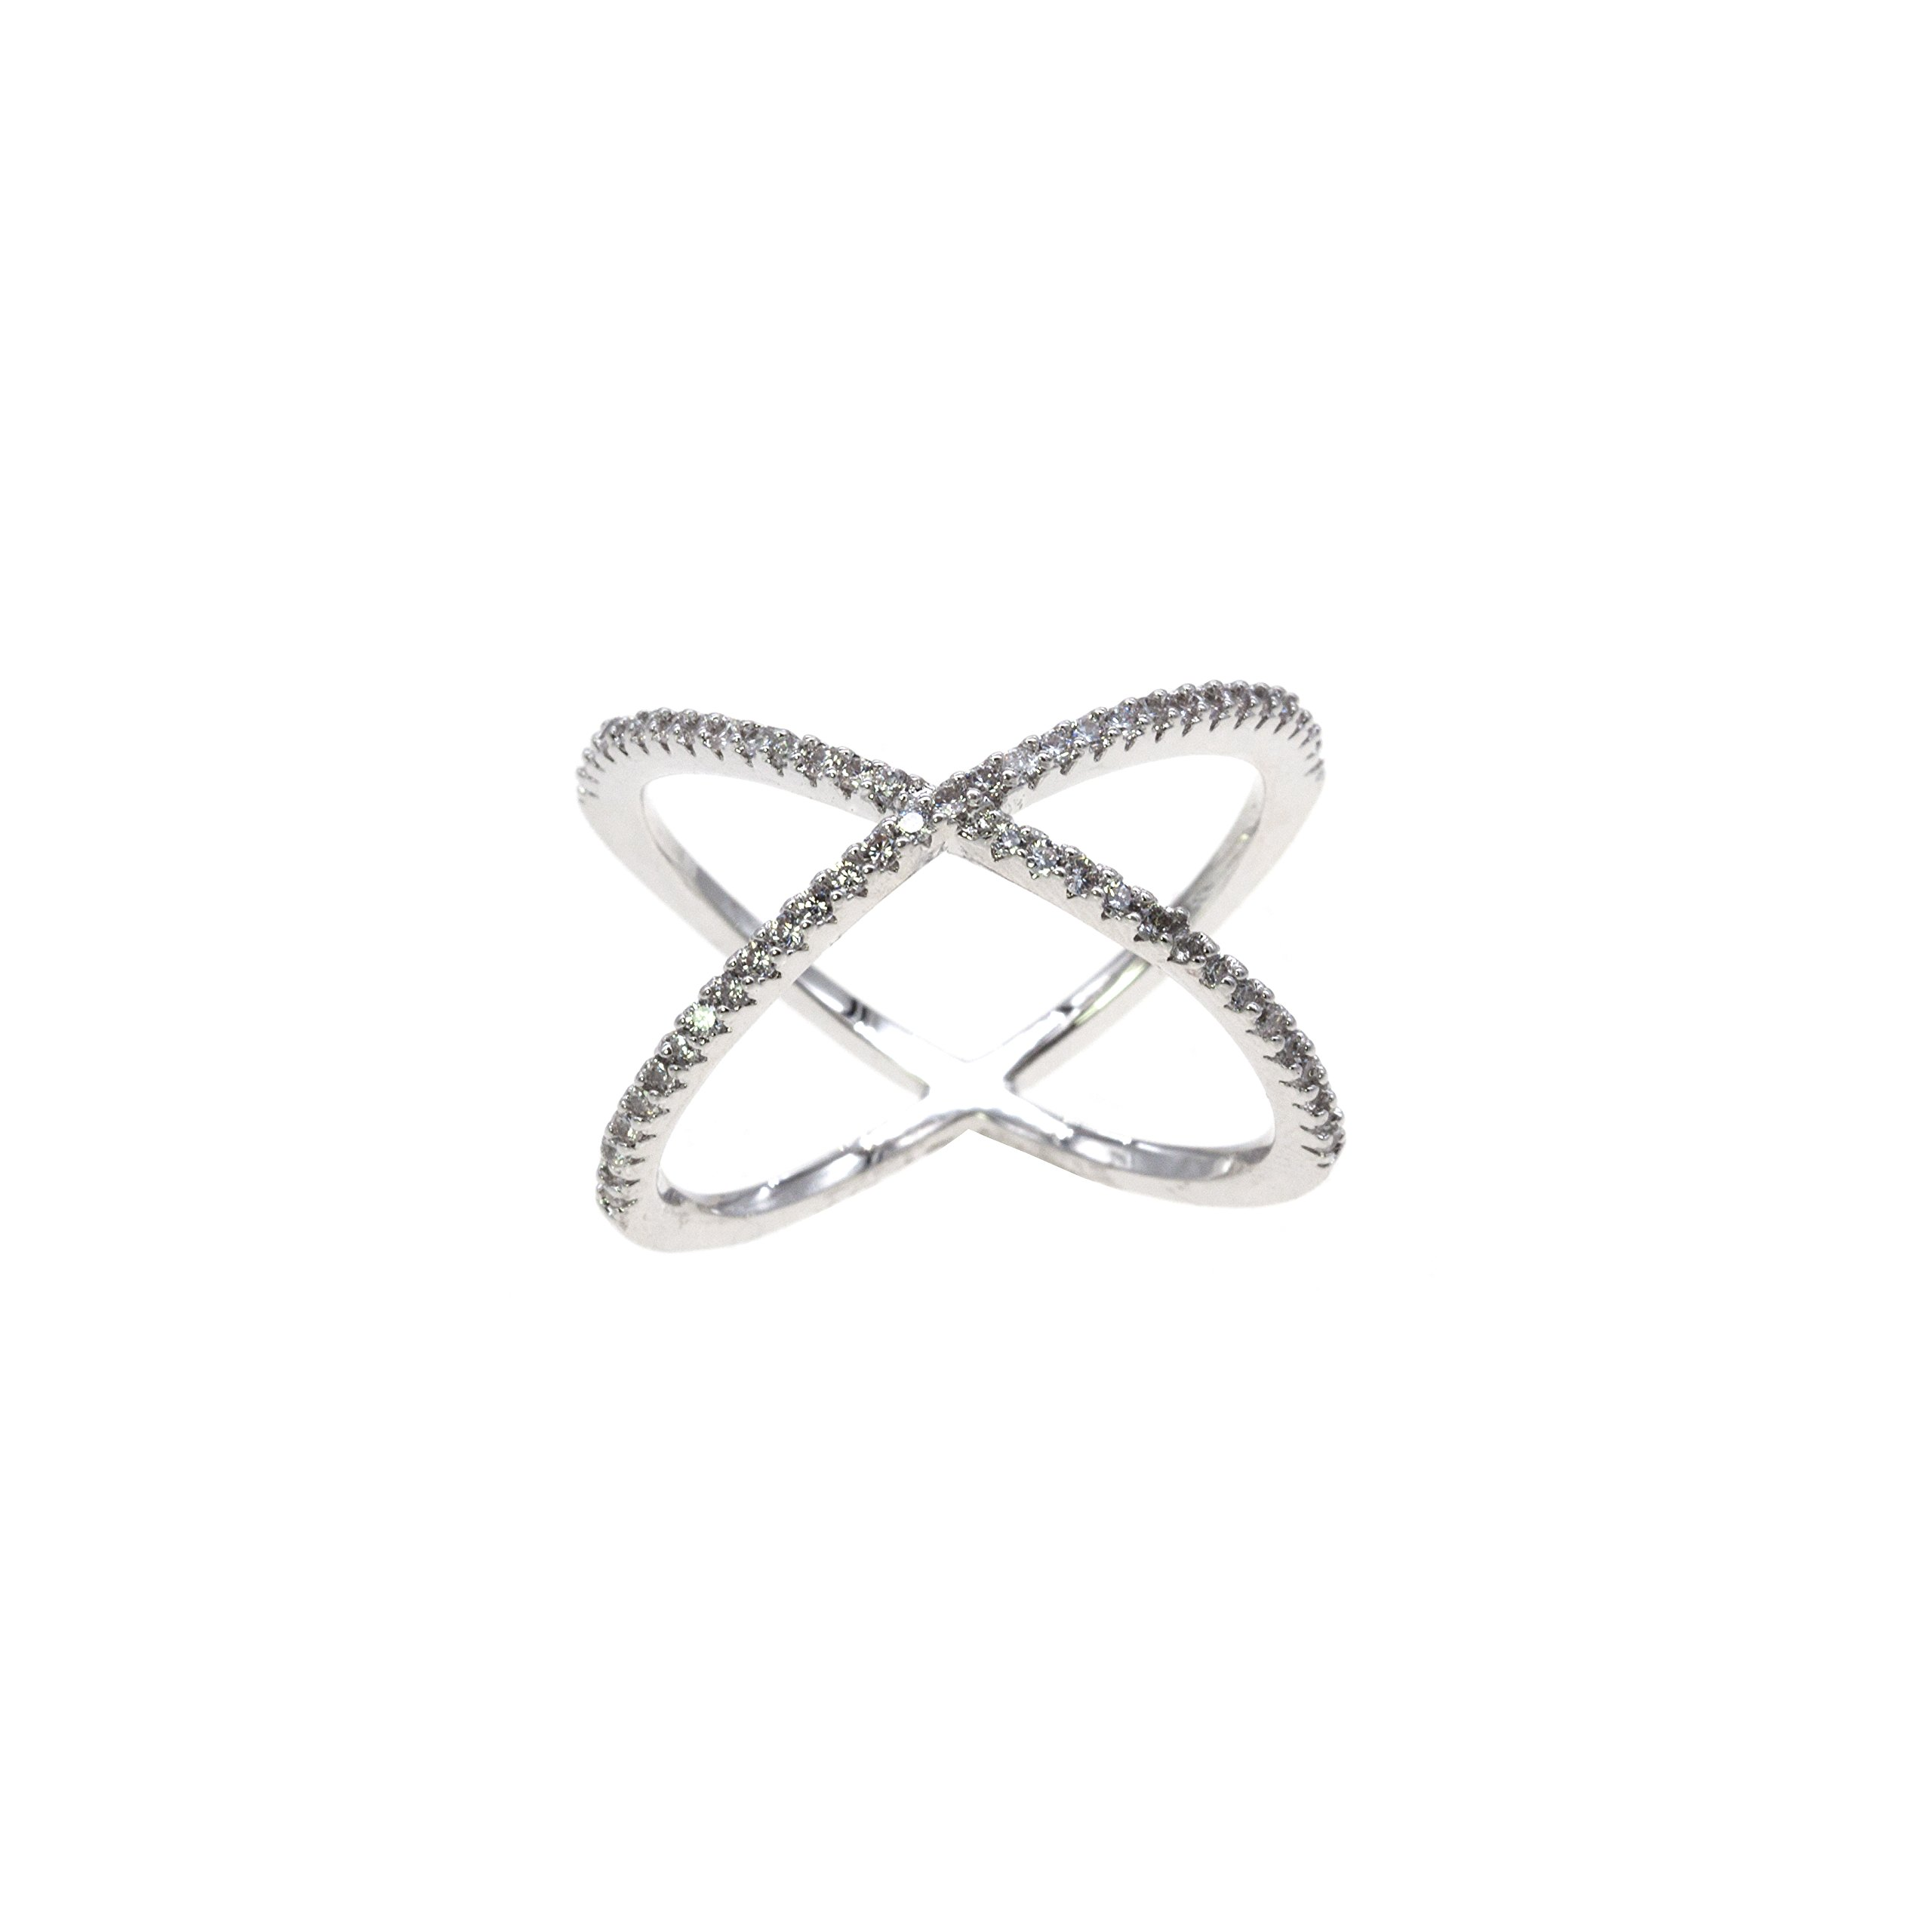 Lavencious Single X Cross Rings Criss Trendy Fashion Statement Clear CZ Cocktails Jewelry for Women (Silver, 11)